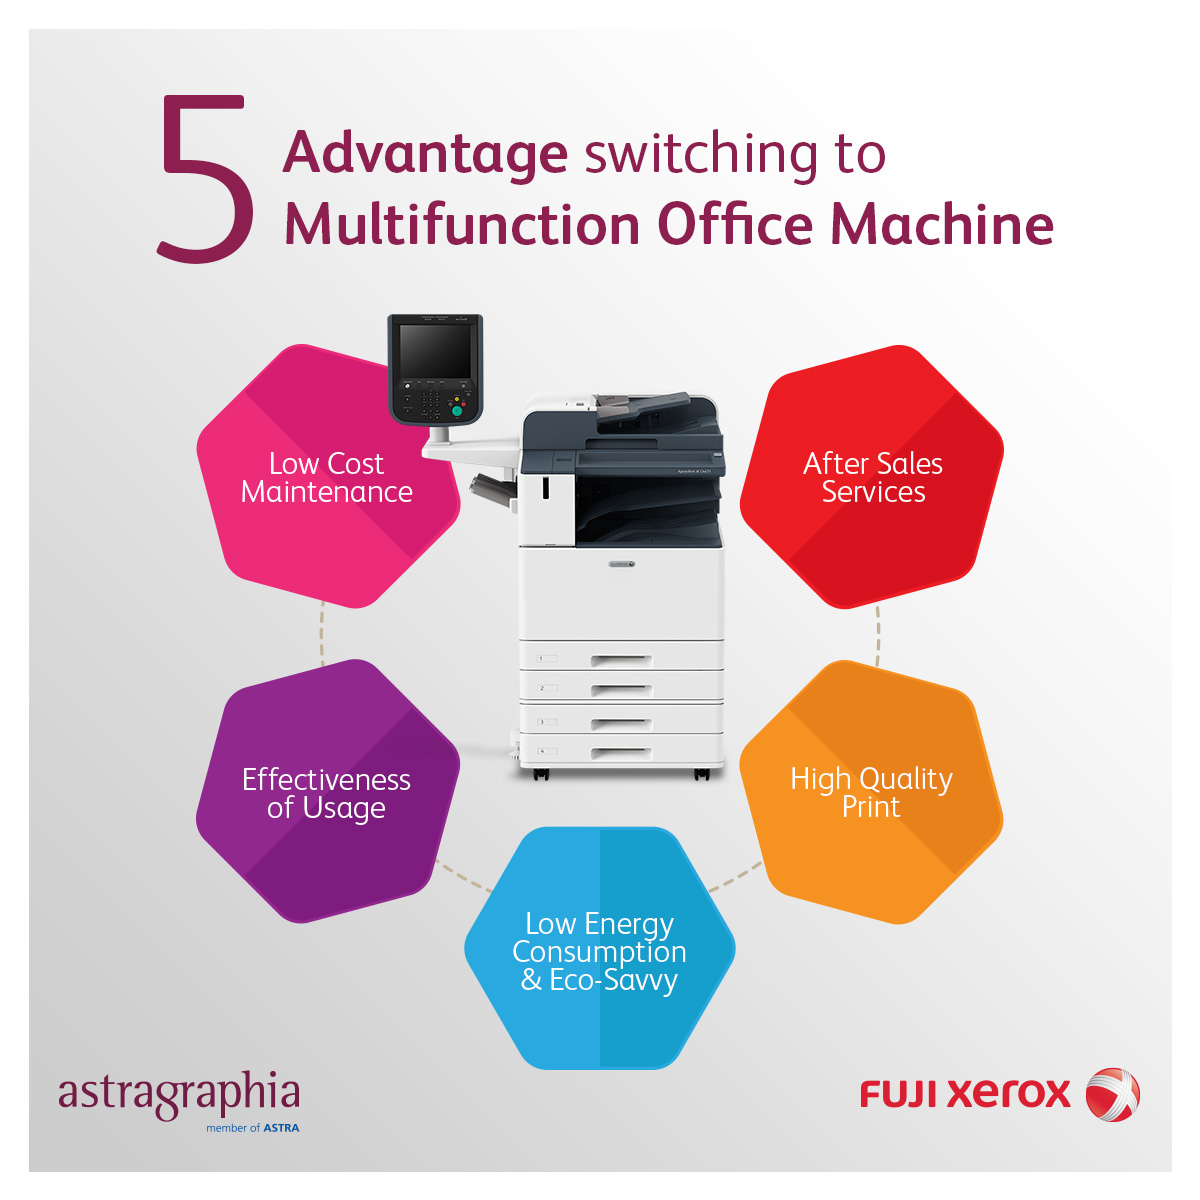 Image 1 - The Advantages of Switching to Multifunction Office Machine